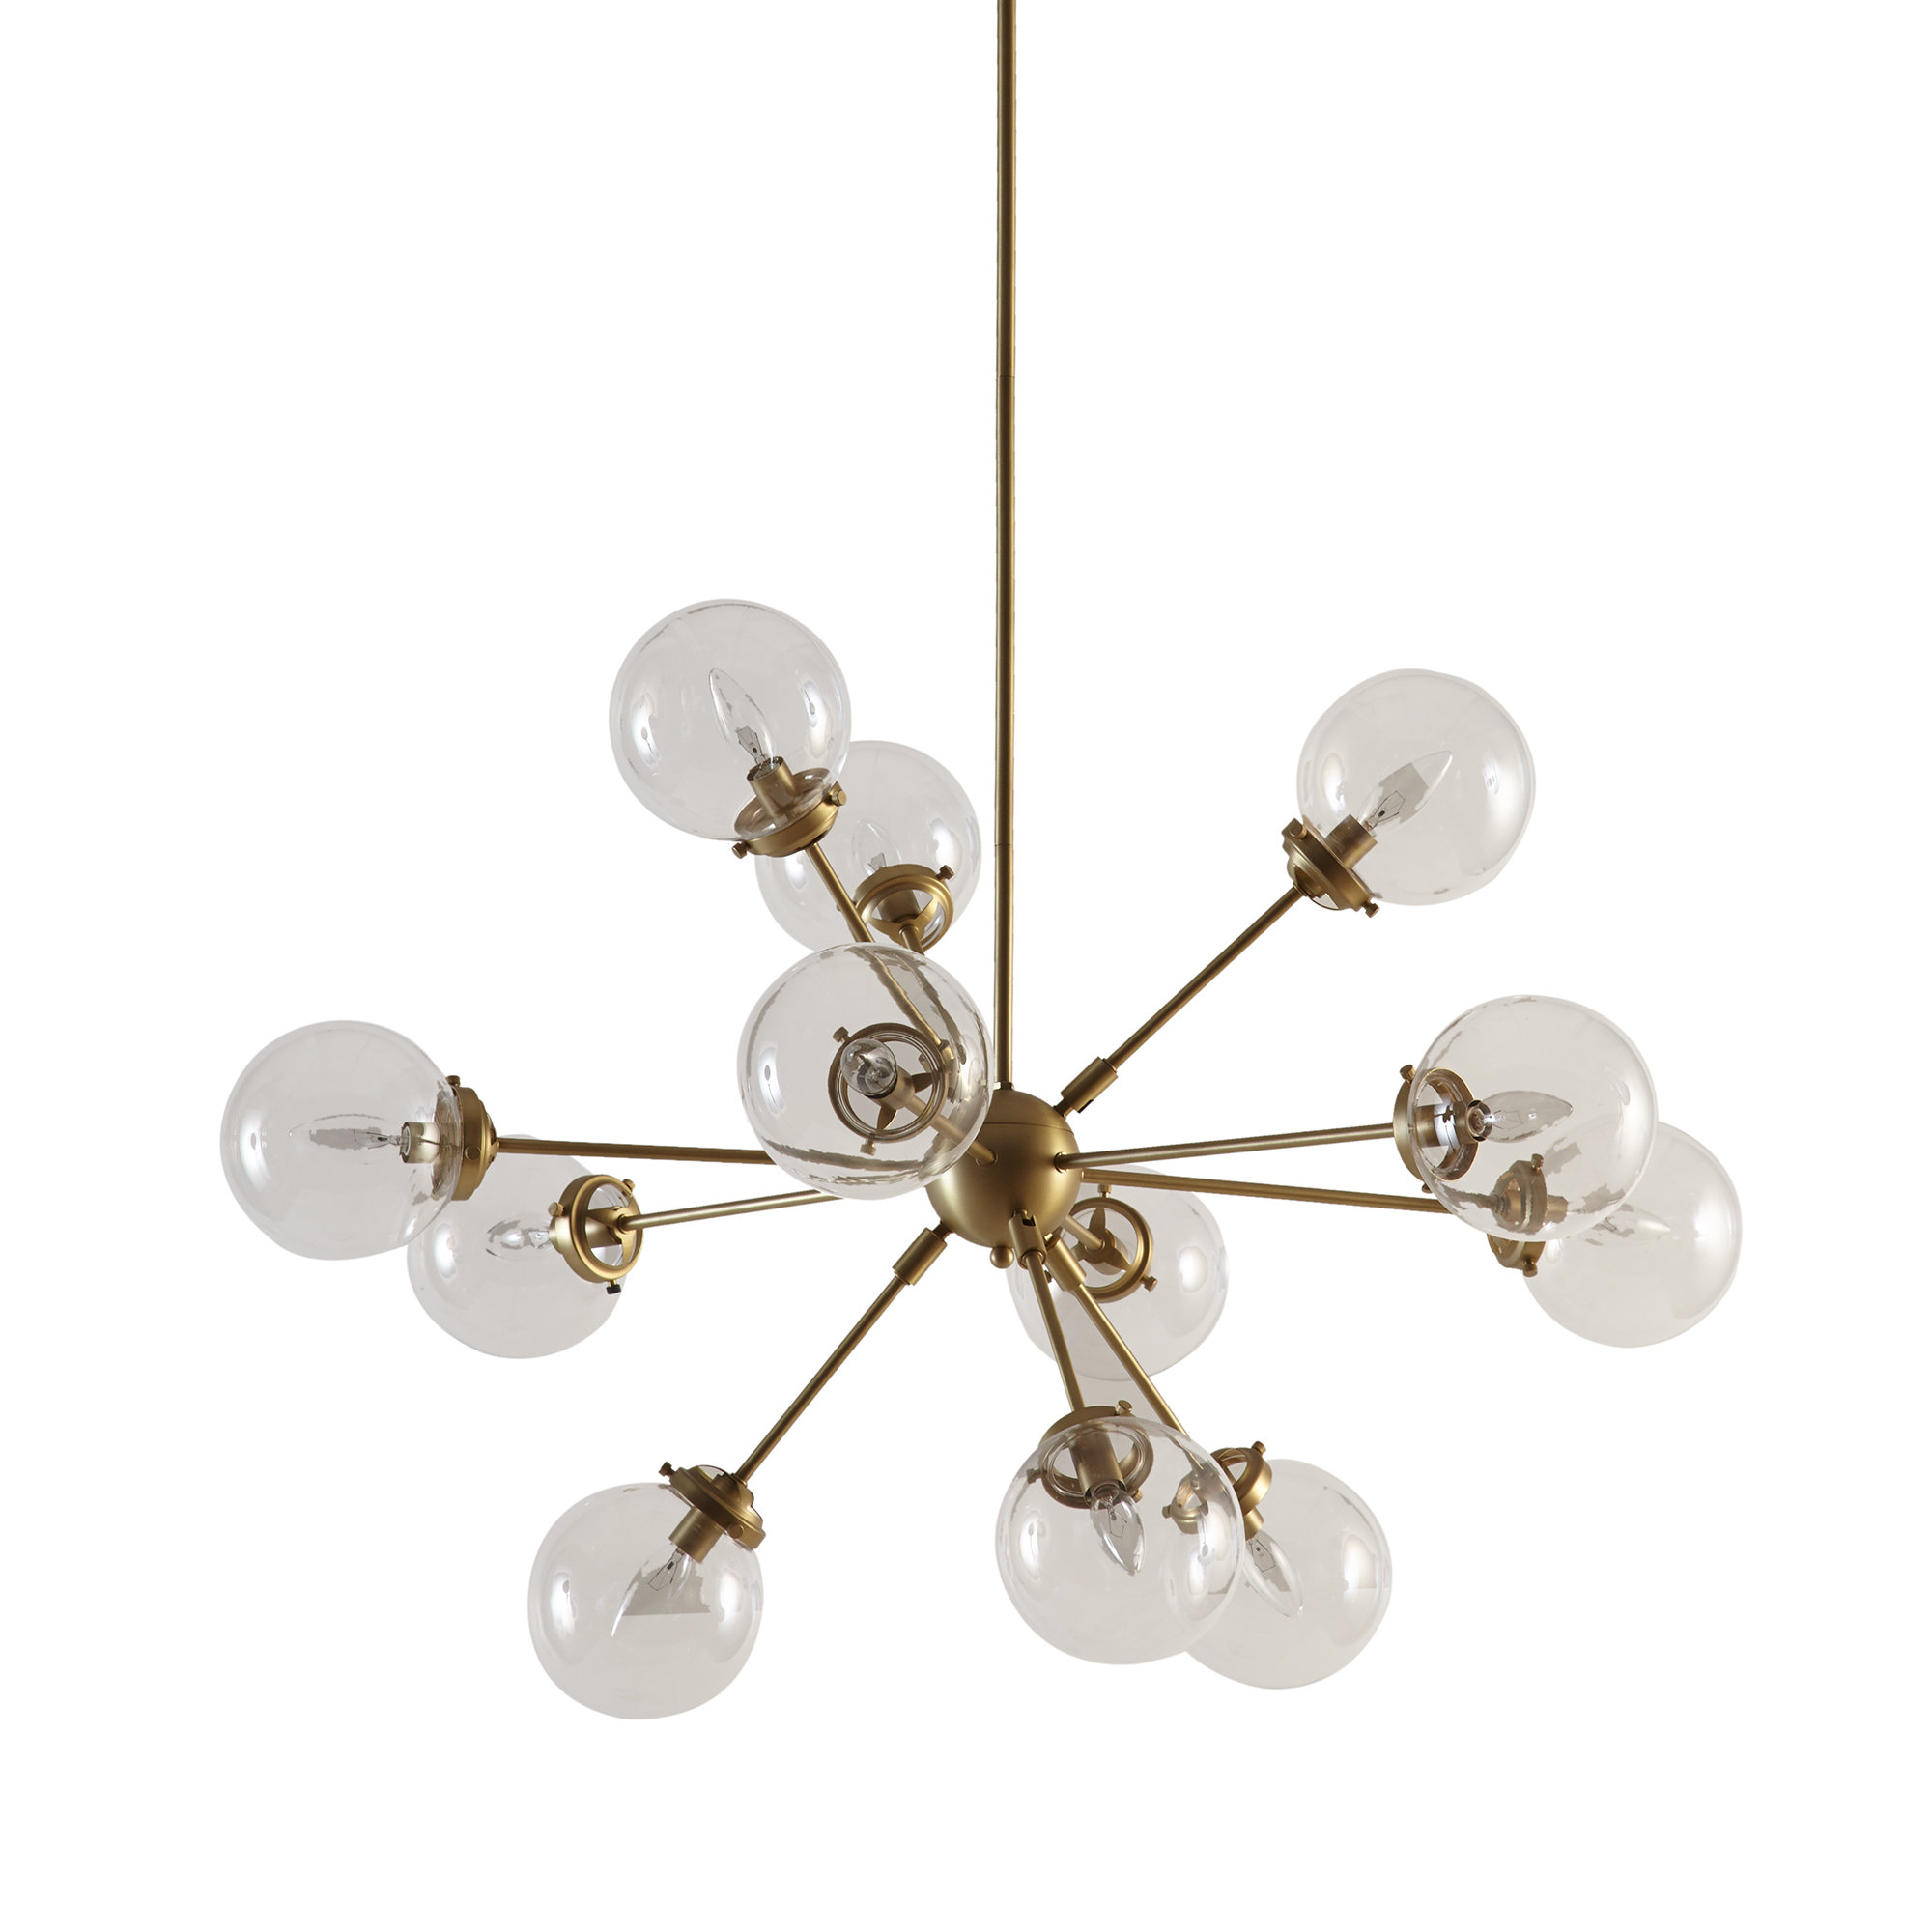 Allmodern With Regard To Best And Newest Everett 10 Light Sputnik Chandeliers (View 13 of 25)